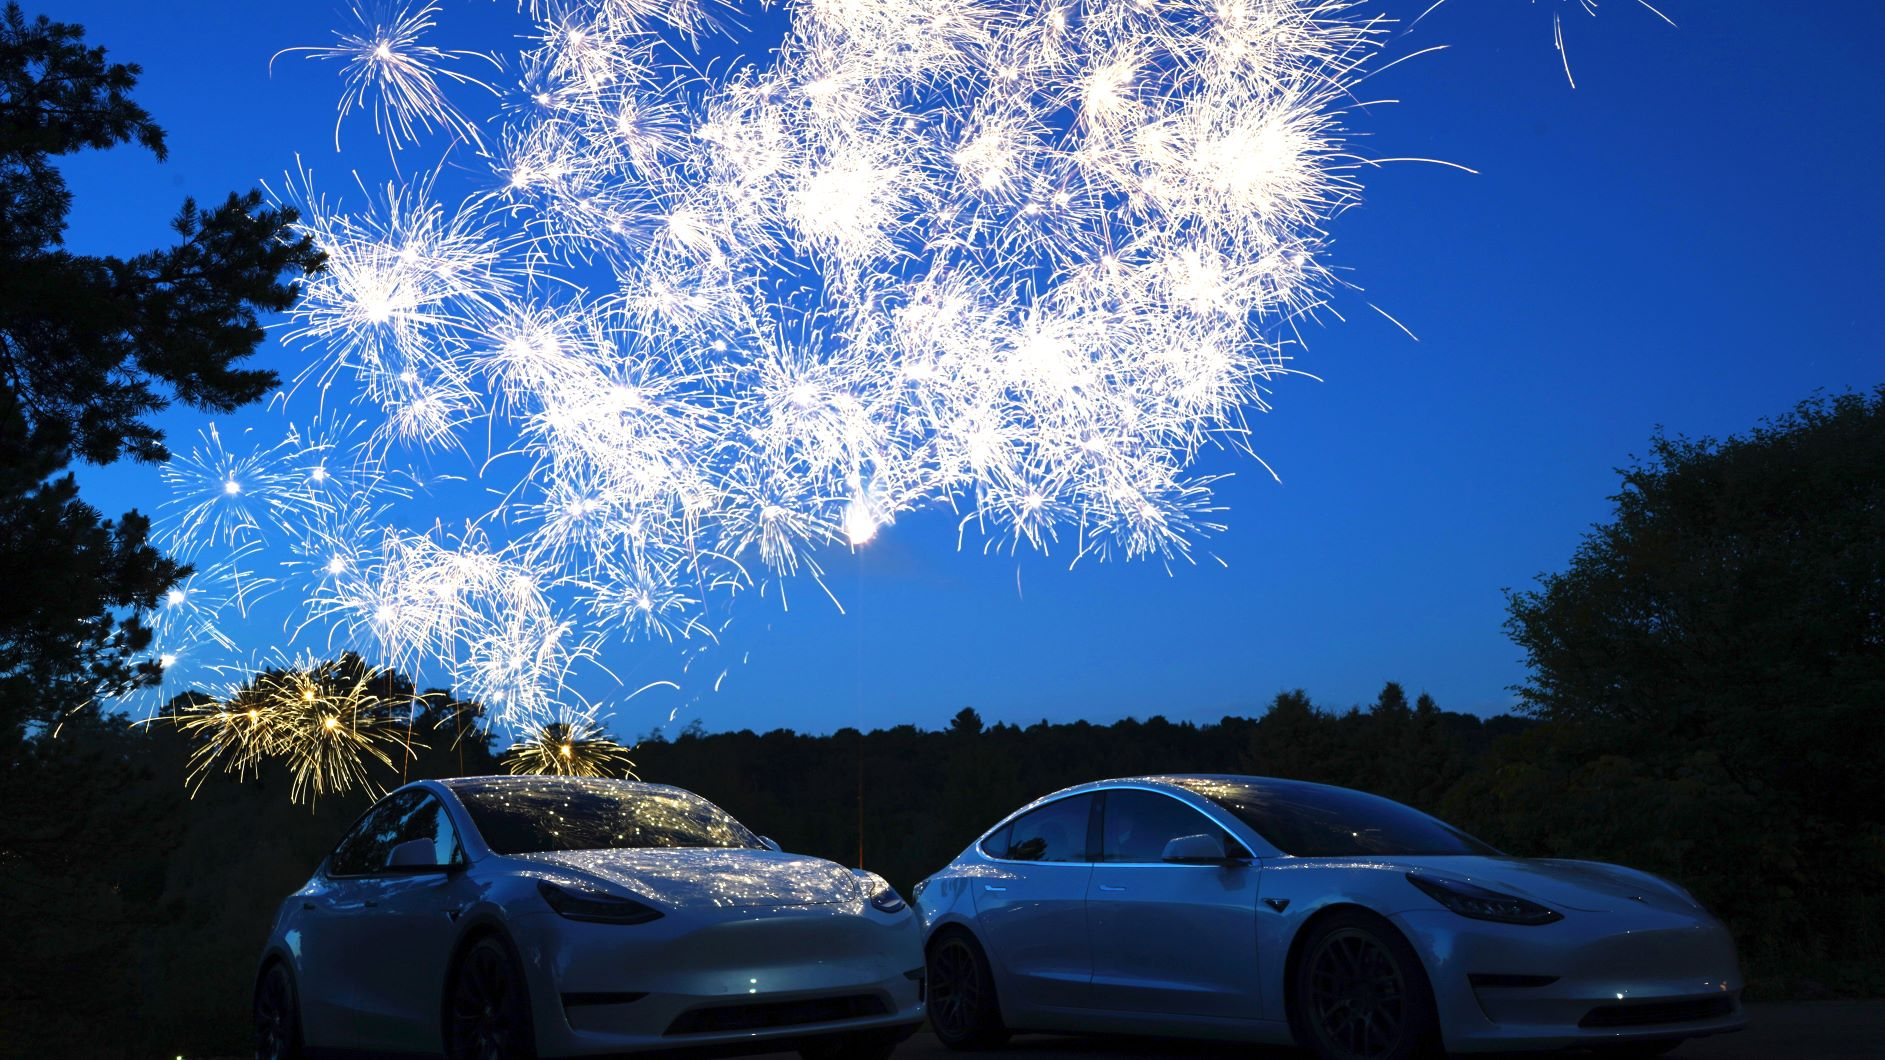 Tesla Shares TSLA Skyrocketing With Eye S&P500 Inclusion, Bears Amass $20B Shorts